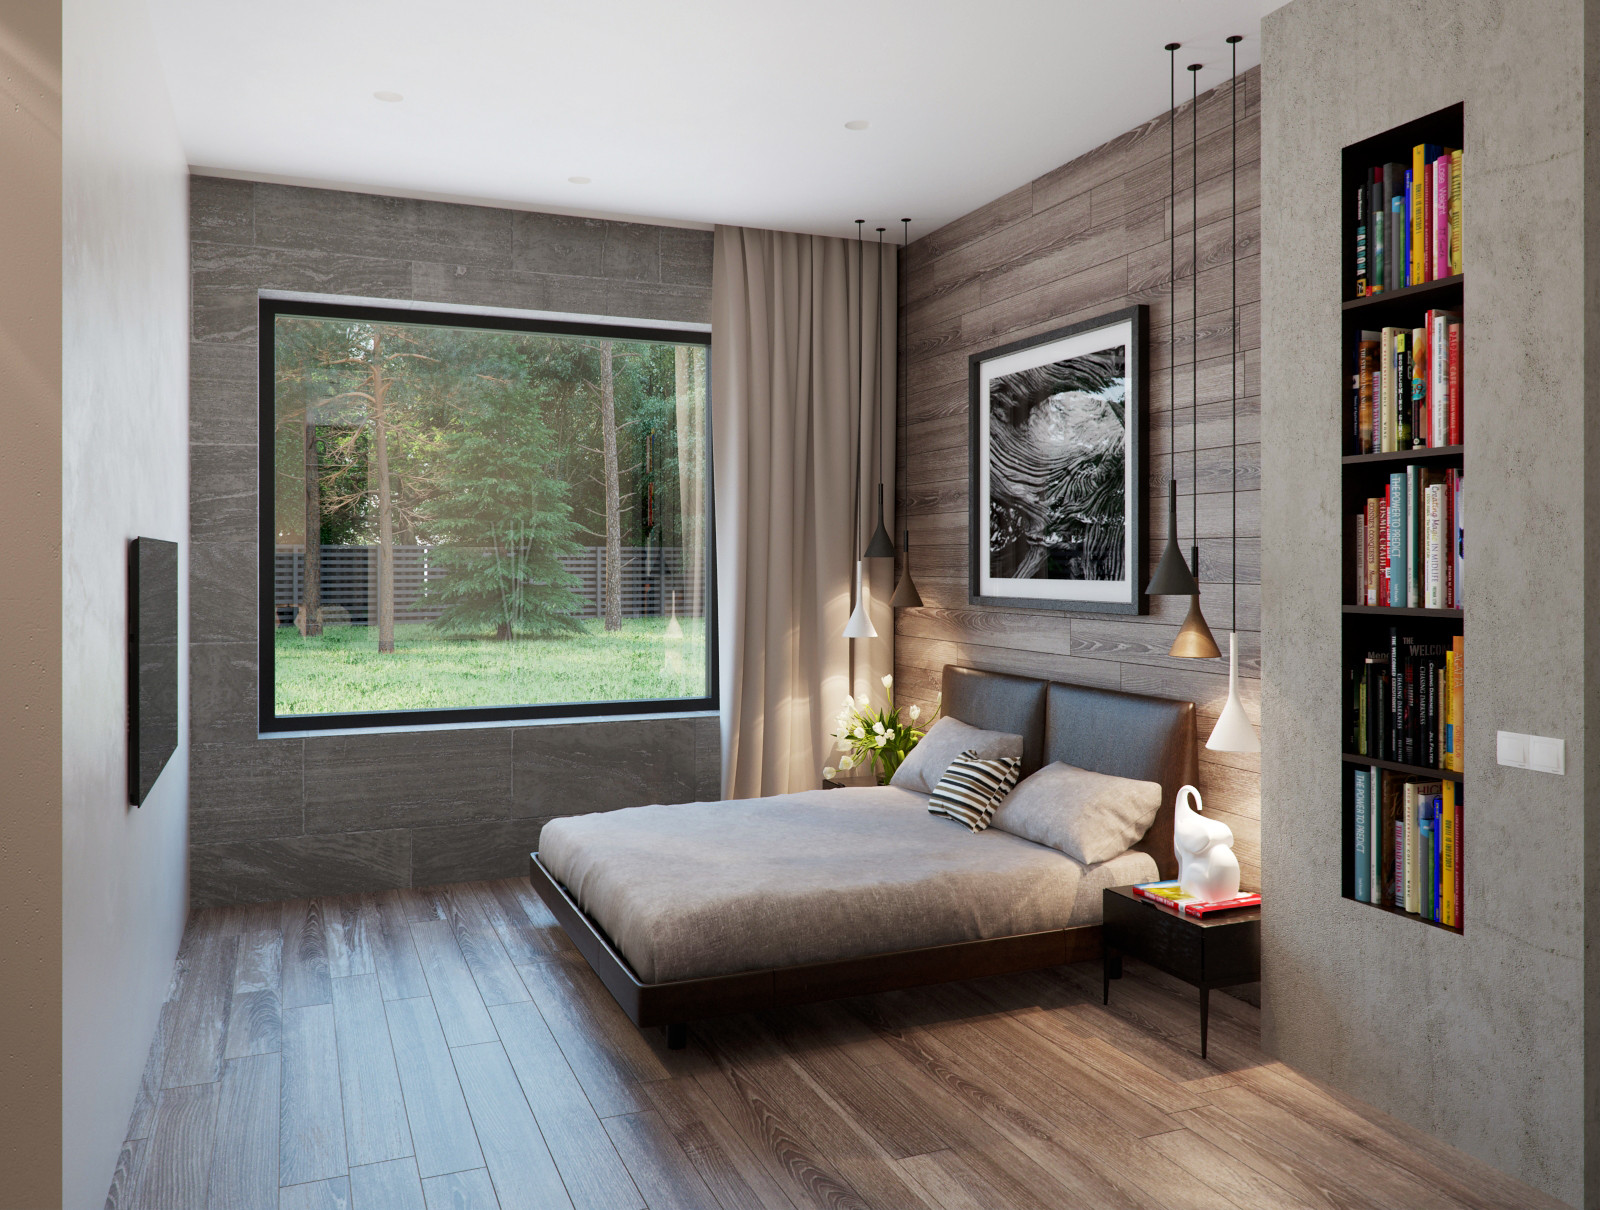 Best ideas about Small Bedroom Design . Save or Pin 20 Best Small Modern Bedroom Ideas Architecture Beast Now.